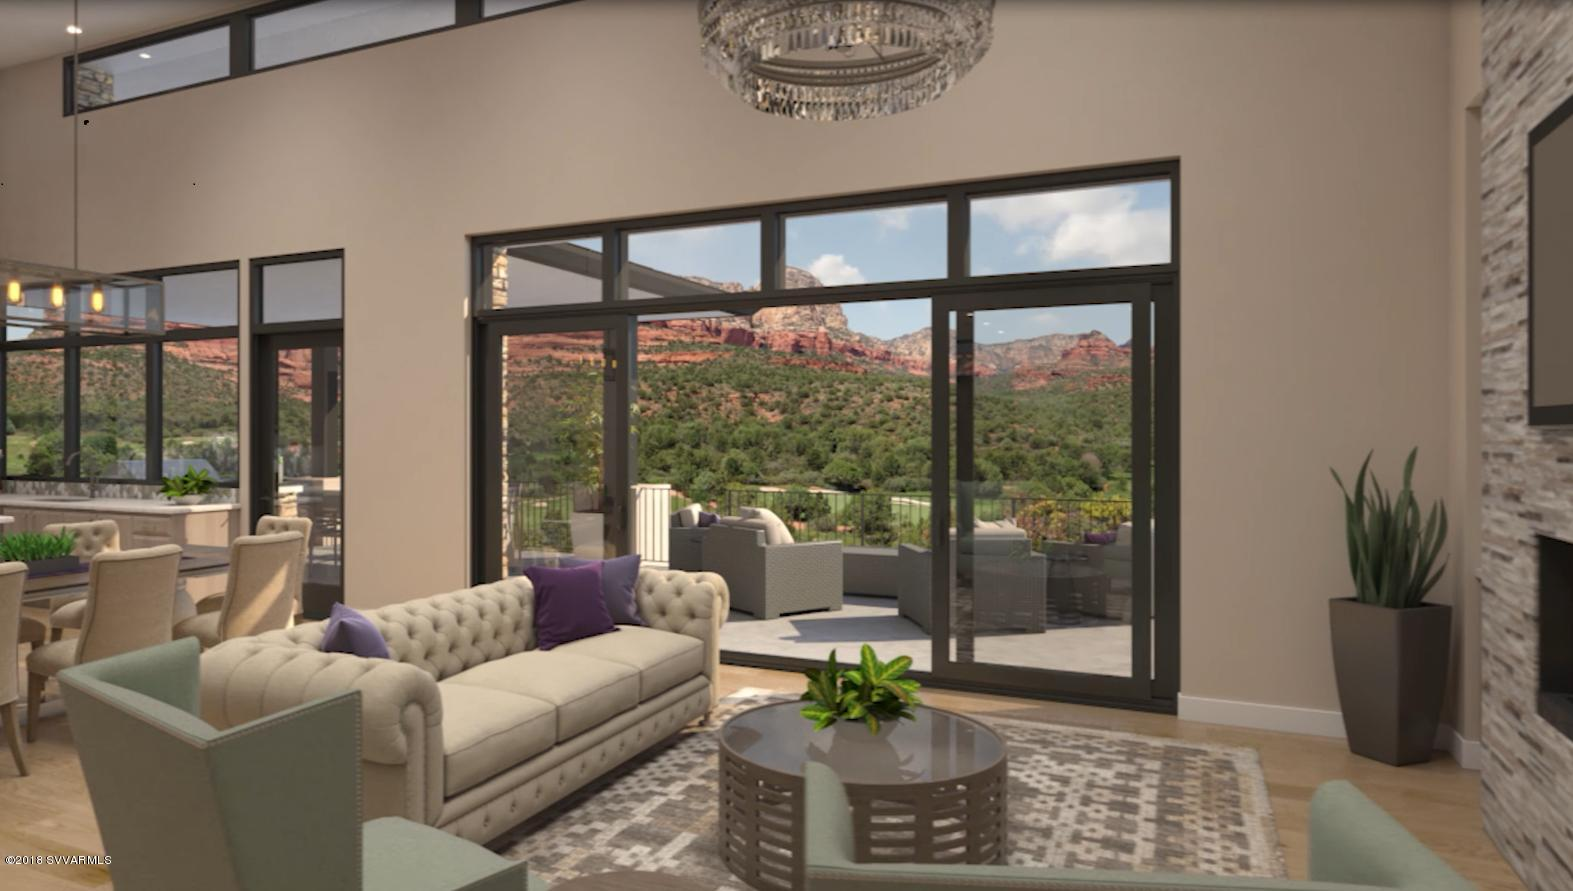 104 Lot 17 Fay Canyon Road Sedona, AZ 86336